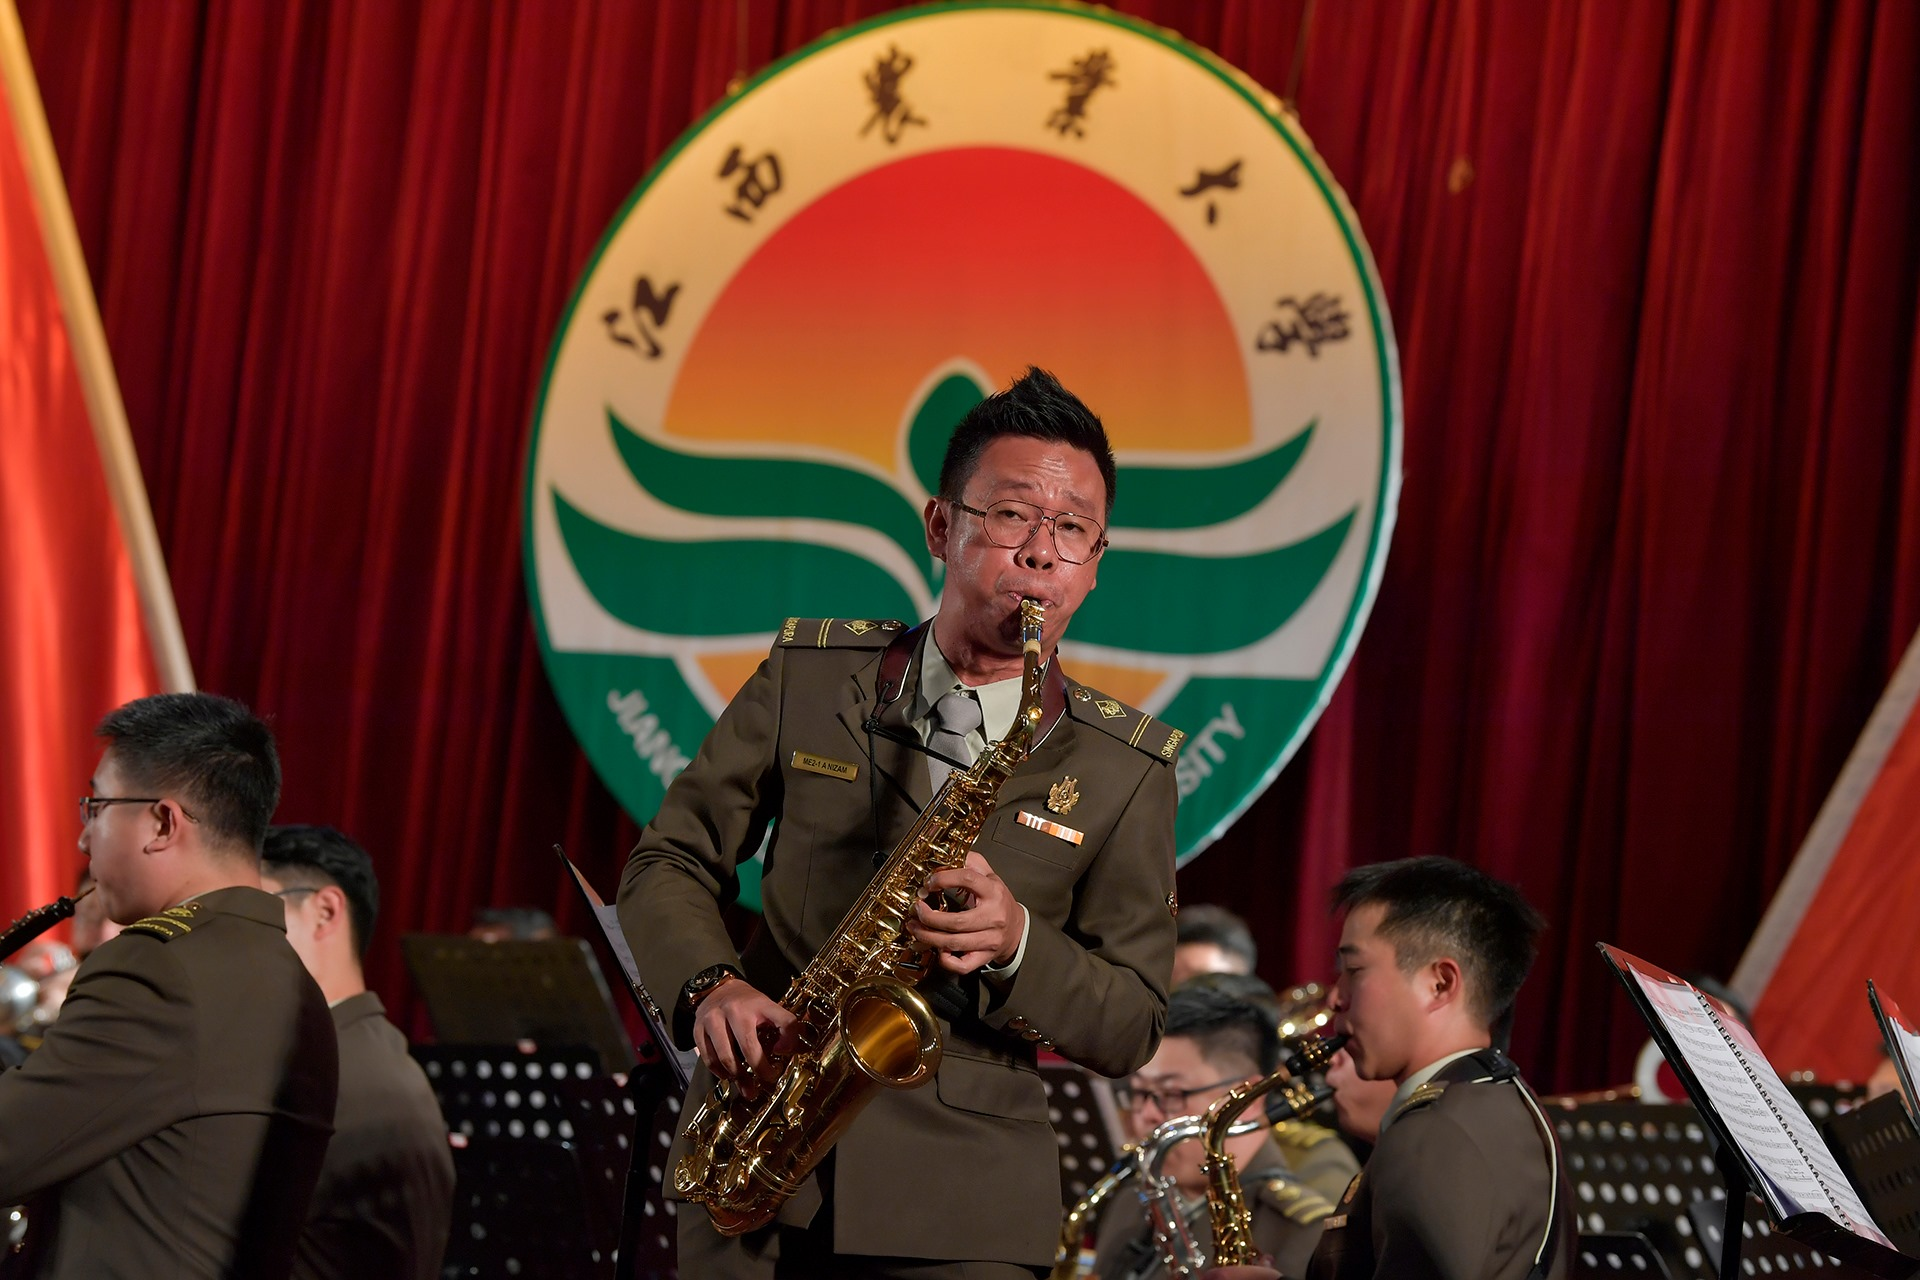 Performing a saxophone solo at the university concert in Nanchang, Jiangxi, China.